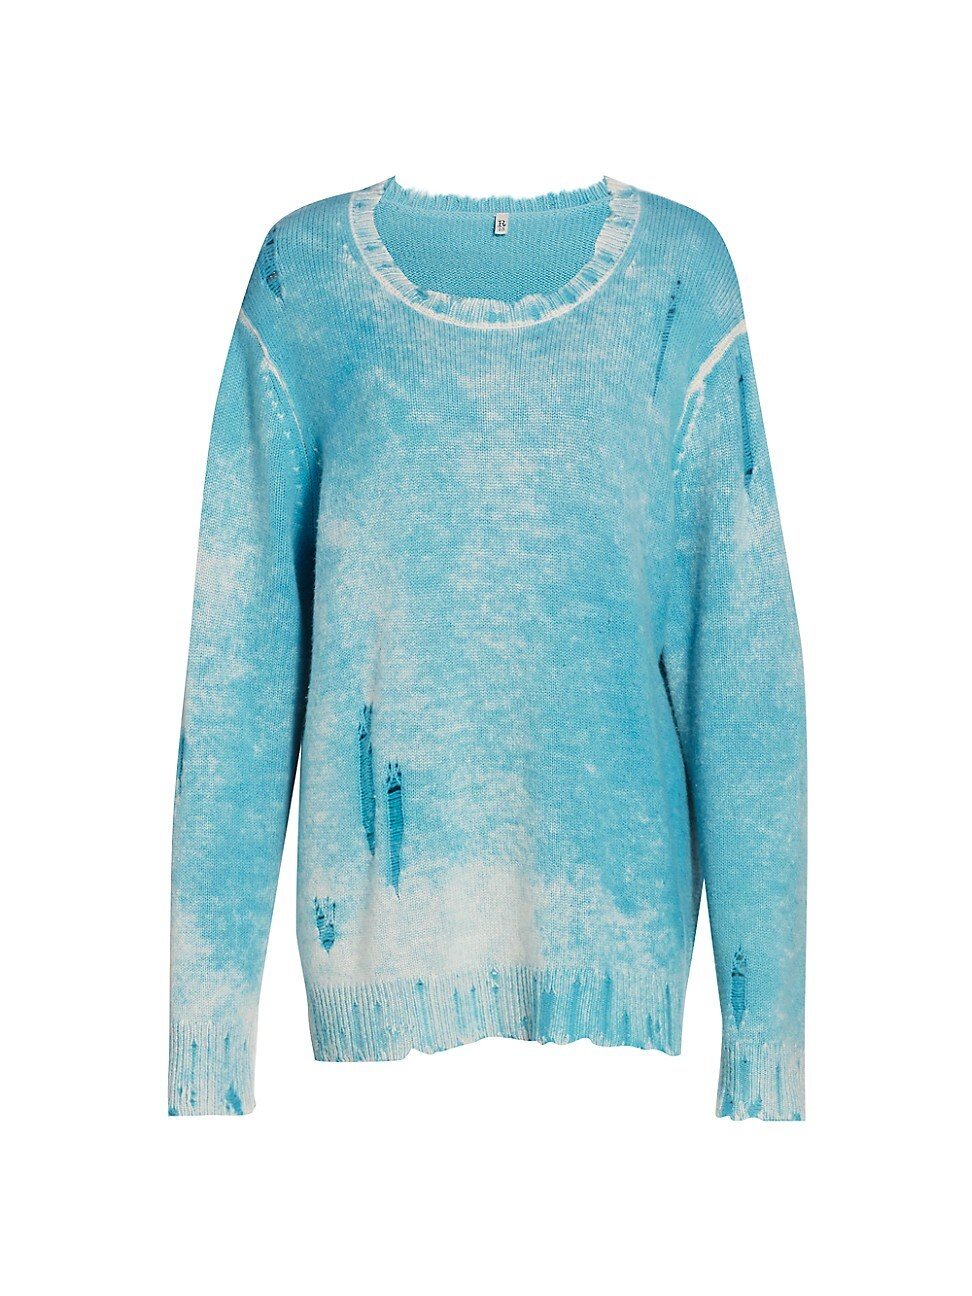 R13 WOMEN'S FADED CASHMERE LONG-SLEEVE SWEATER